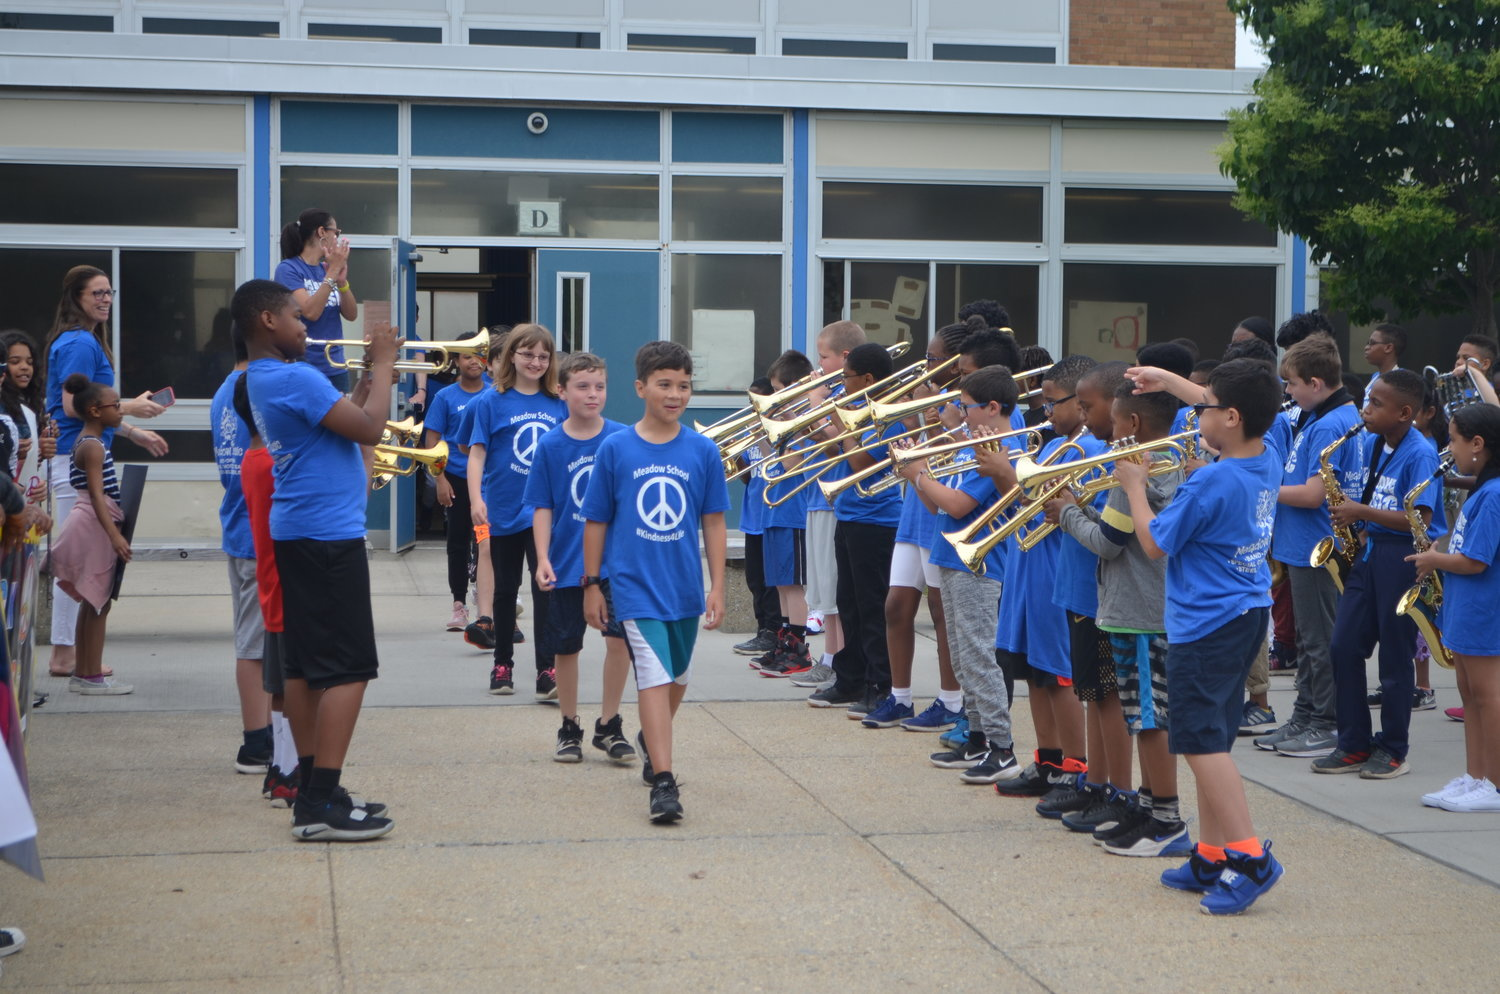 And they're off to a global contest — The Baldwin School District hosted a send-off celebration June 5 before a group of Meadow Elementary School students embarked on a trip to the international competition of the Future Problem Solving Bowl in Massachusetts. The team took second place.